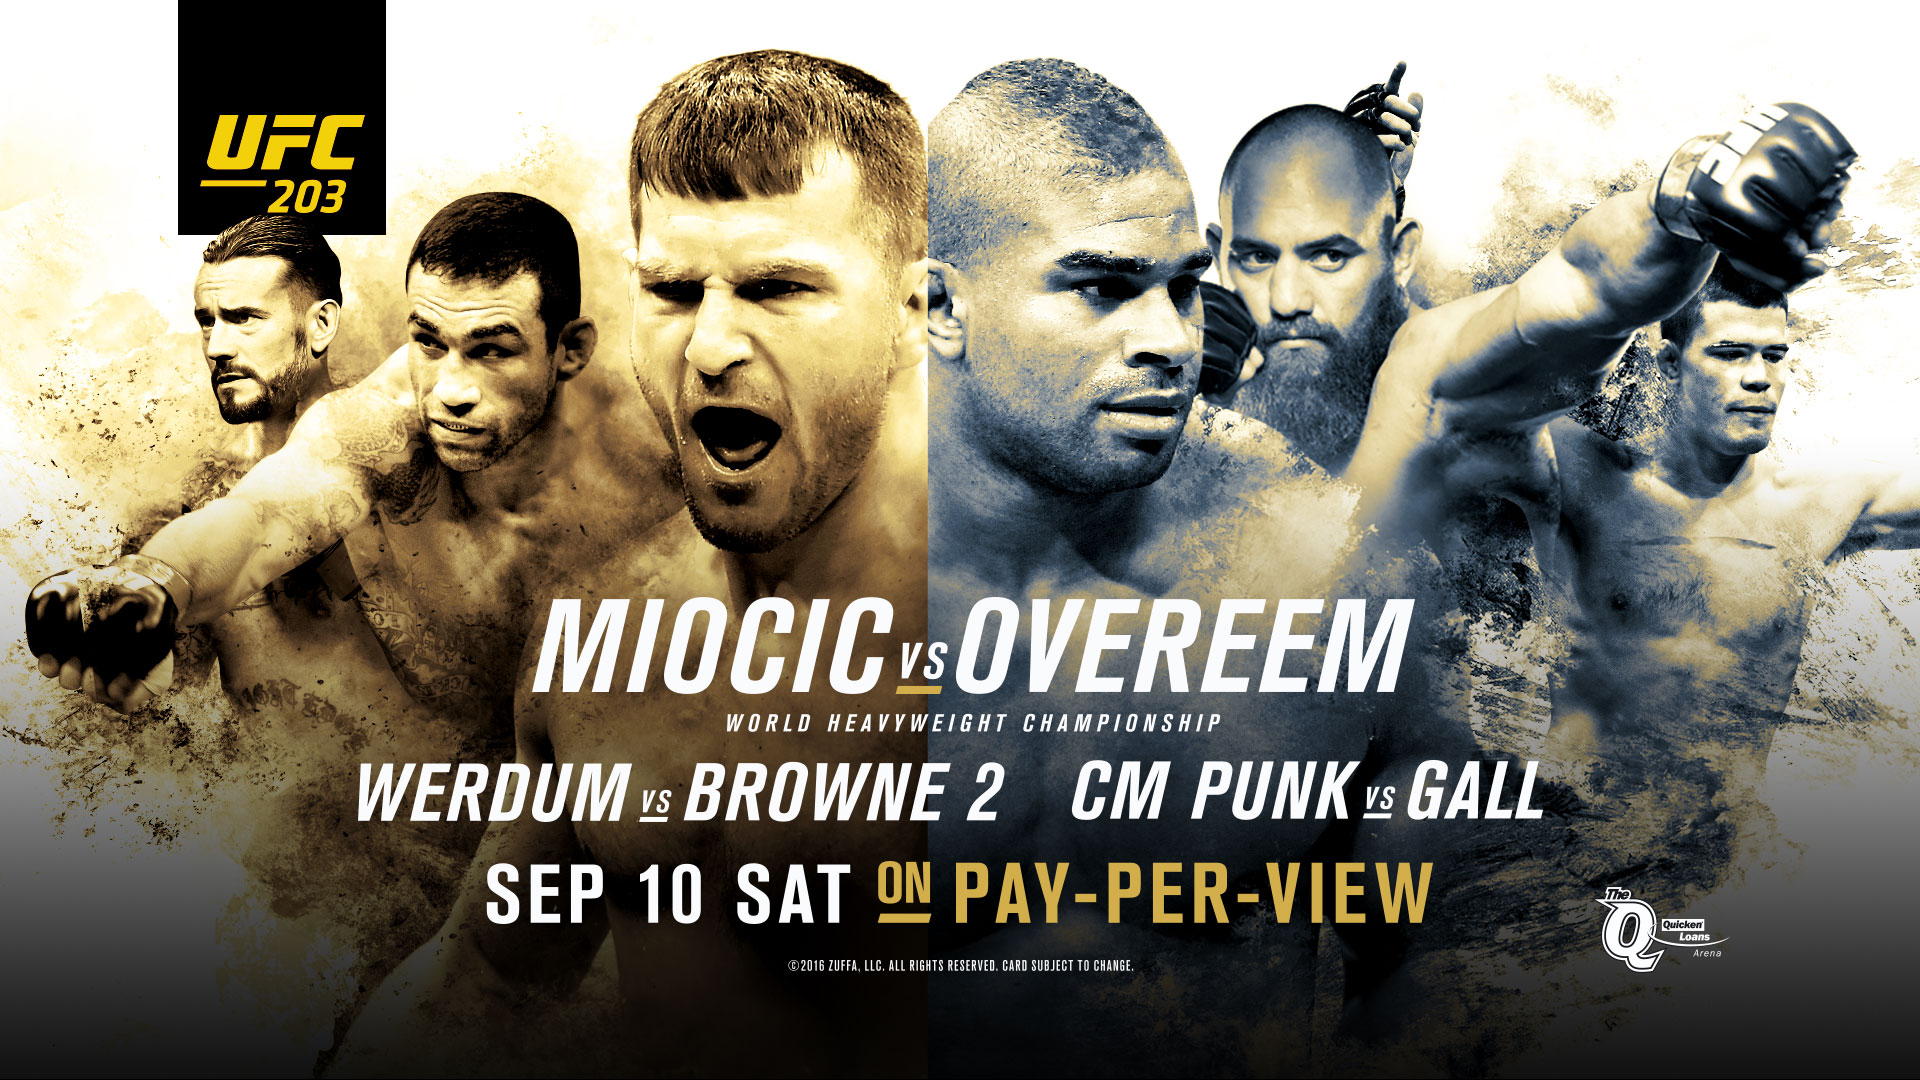 Watch UFC 203 in NYC